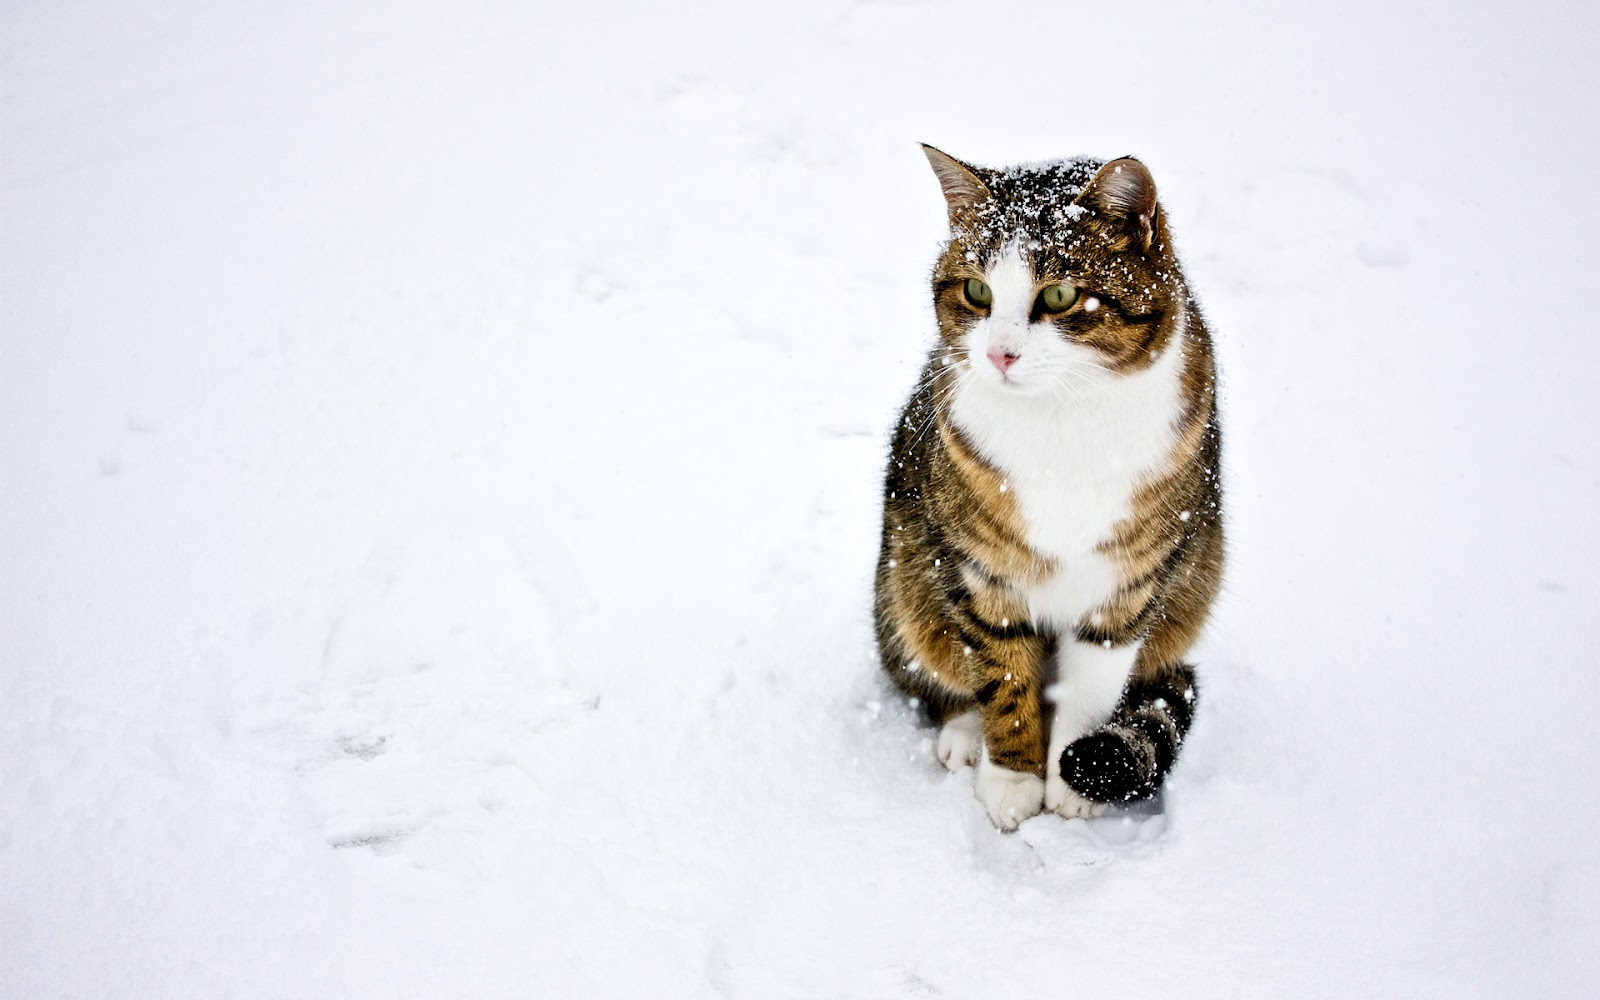 Puss In Boots Wallpaper Hd Proxecto Gato Cats Wallpapers By Bighdwallpapers